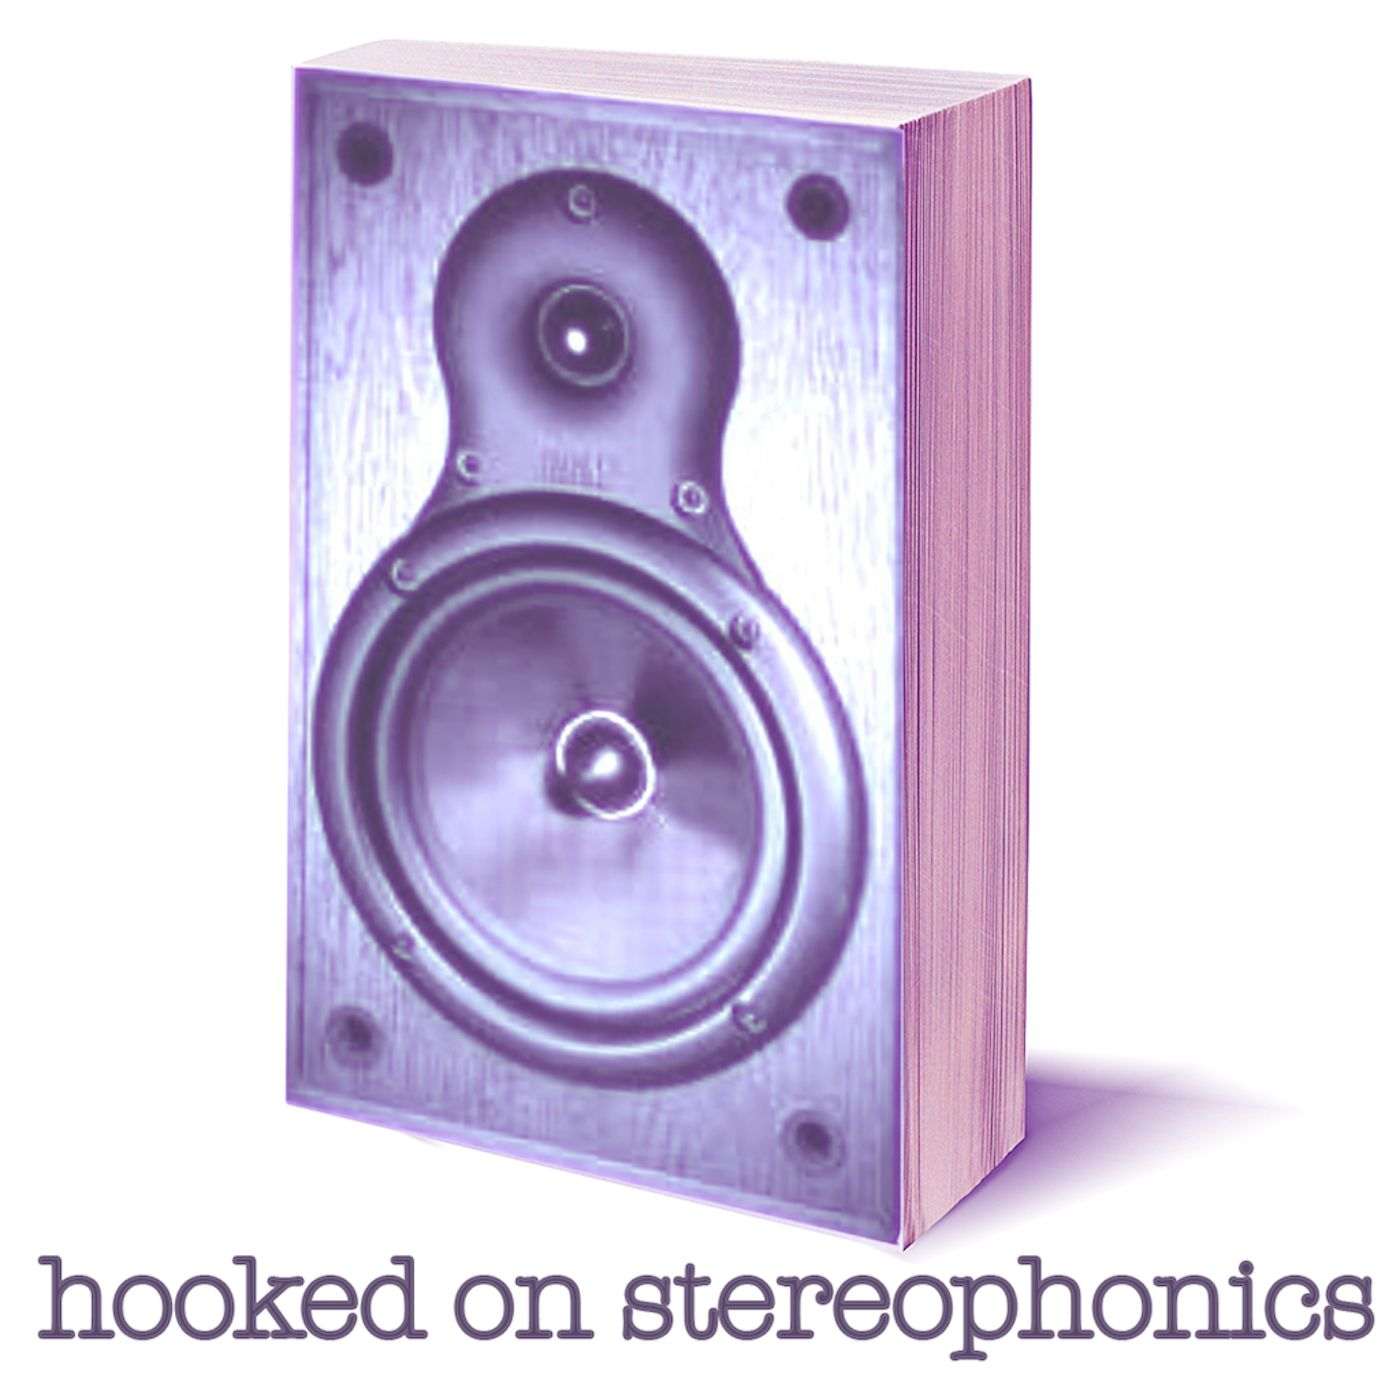 Hooked On Stereophonics